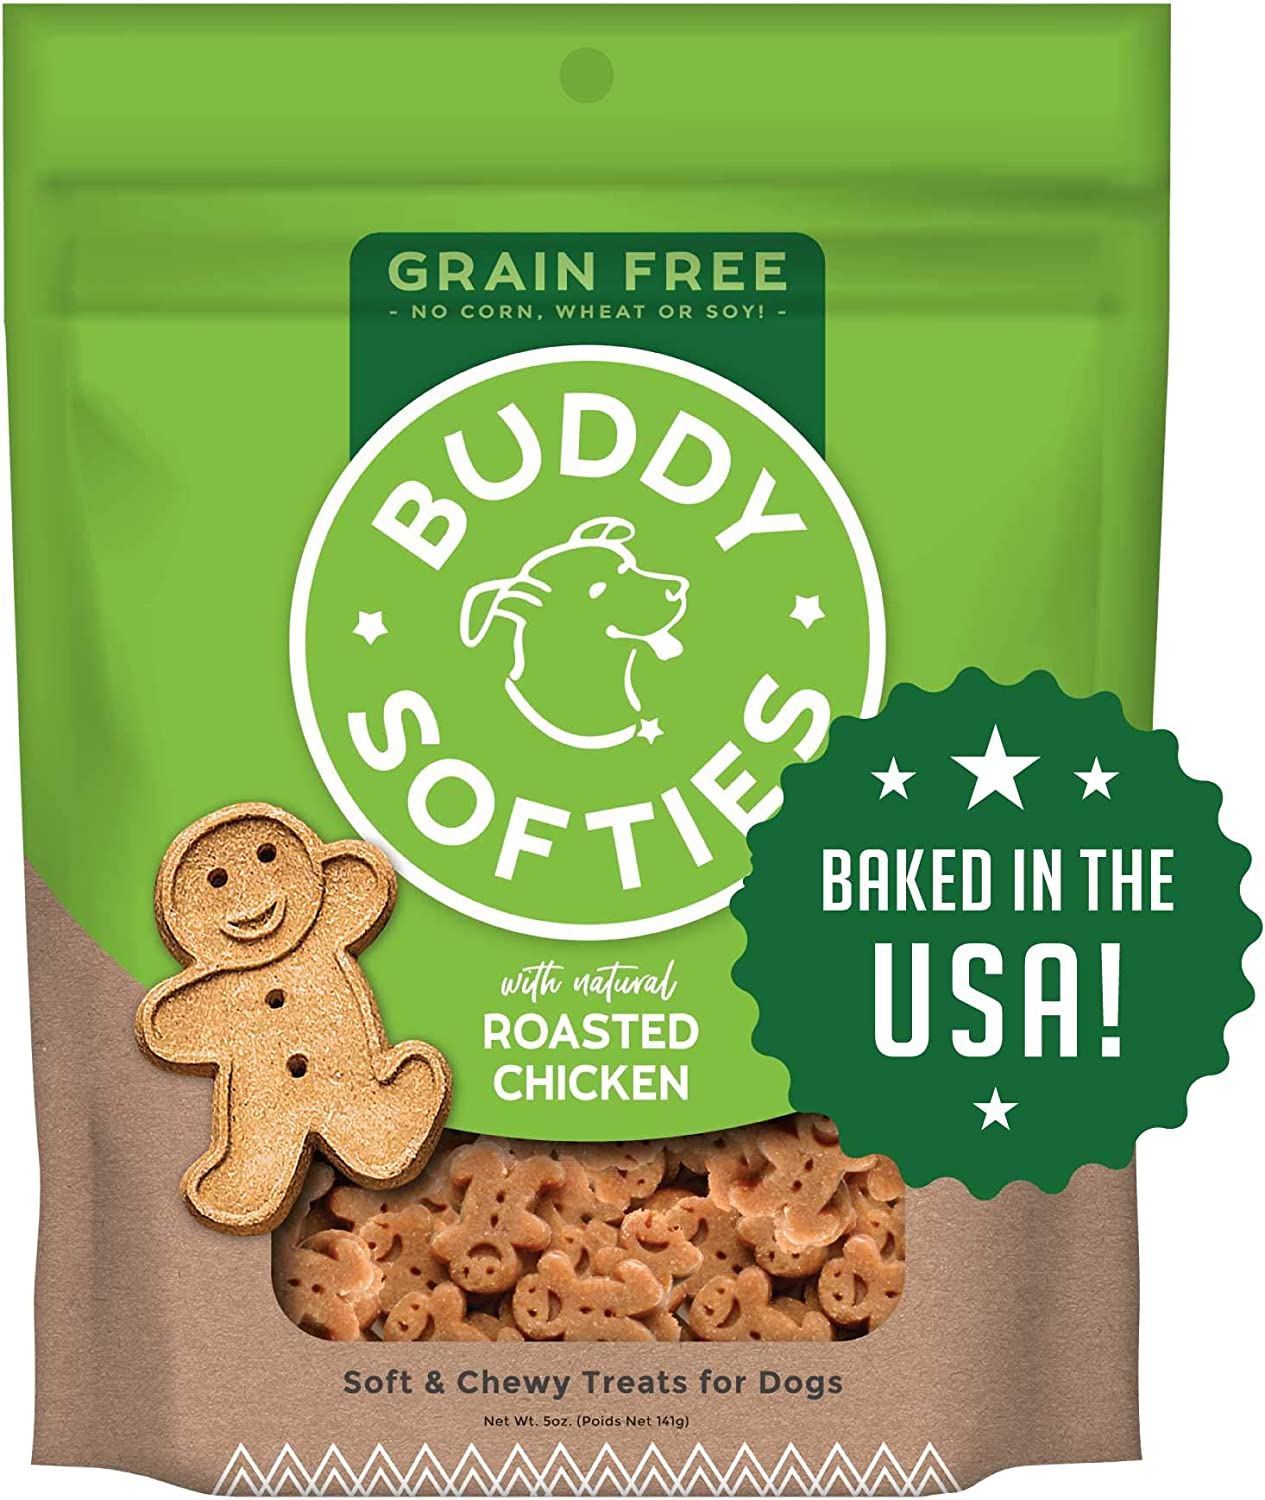 Buddy Biscuits Grain Free Dog Treats Max 56% OFF Only Made USA the in Limited price Heal